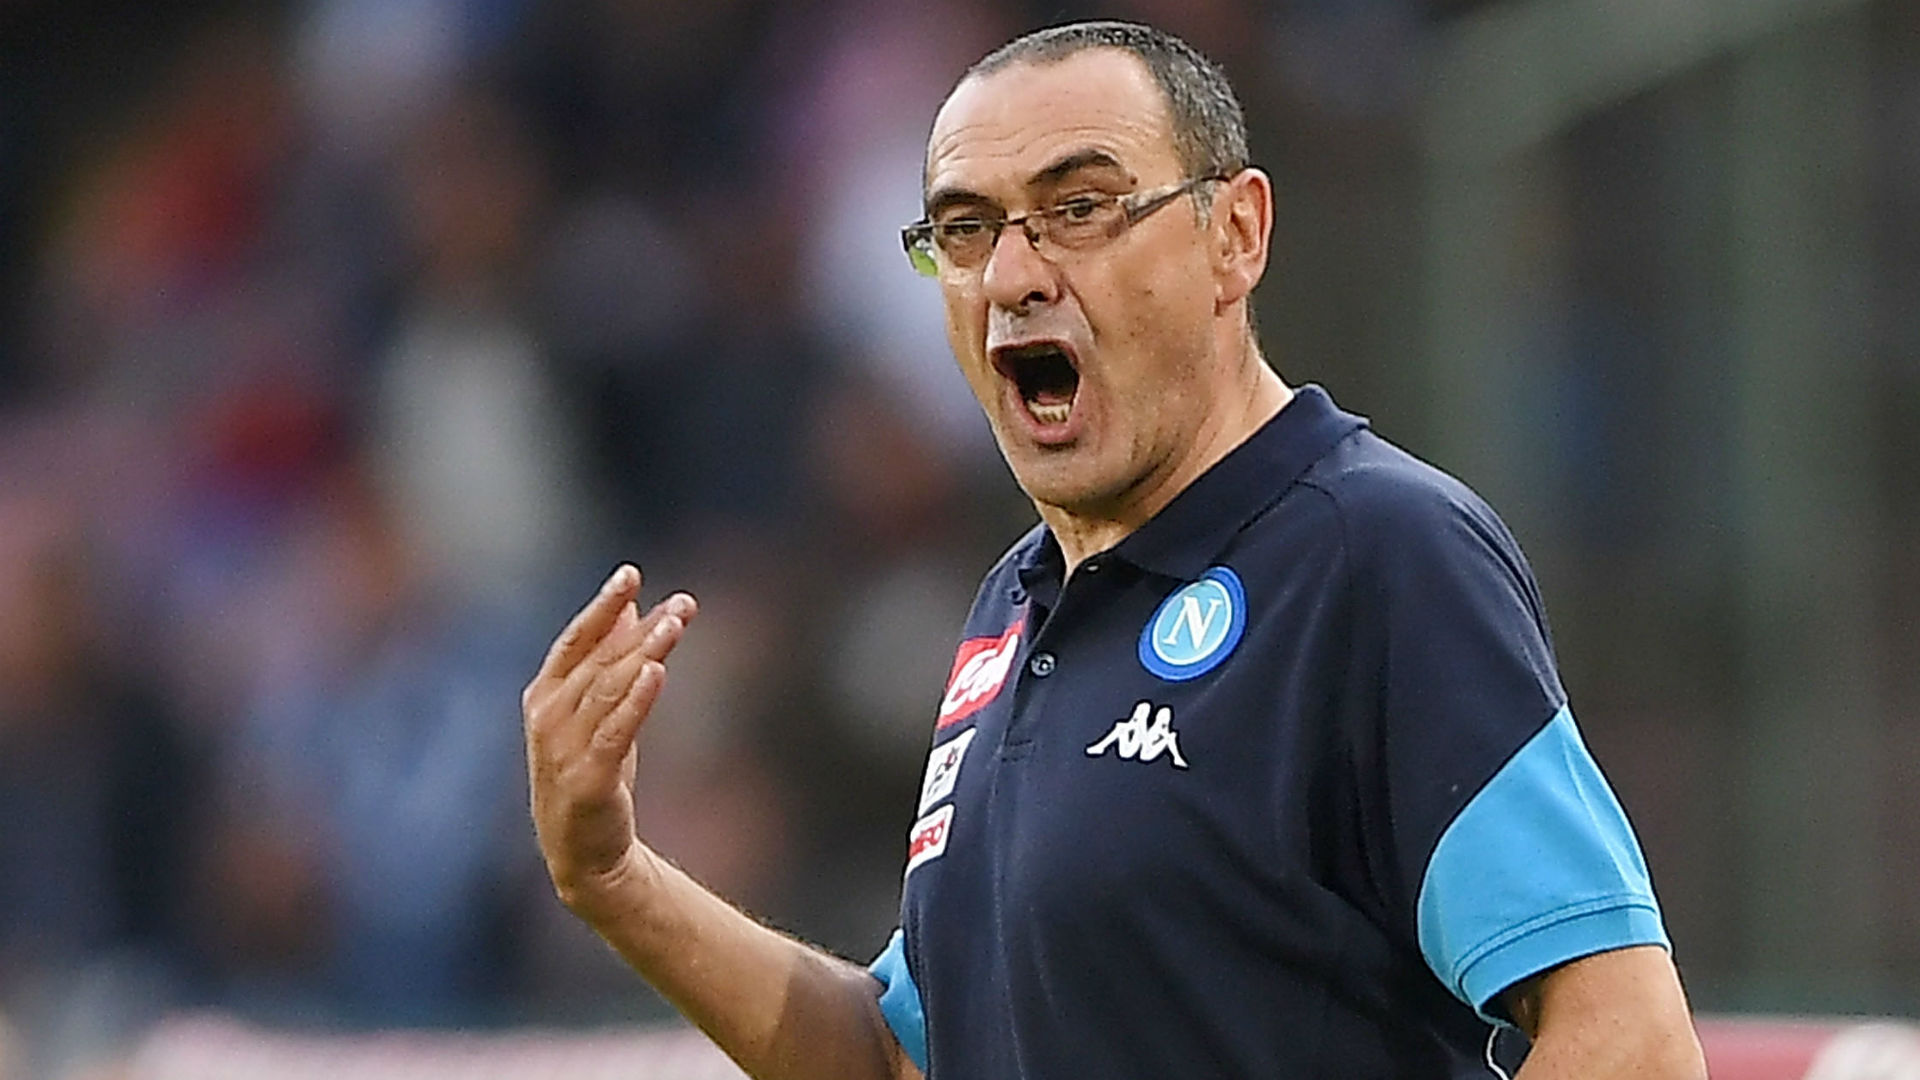 Sarri in conferenza: